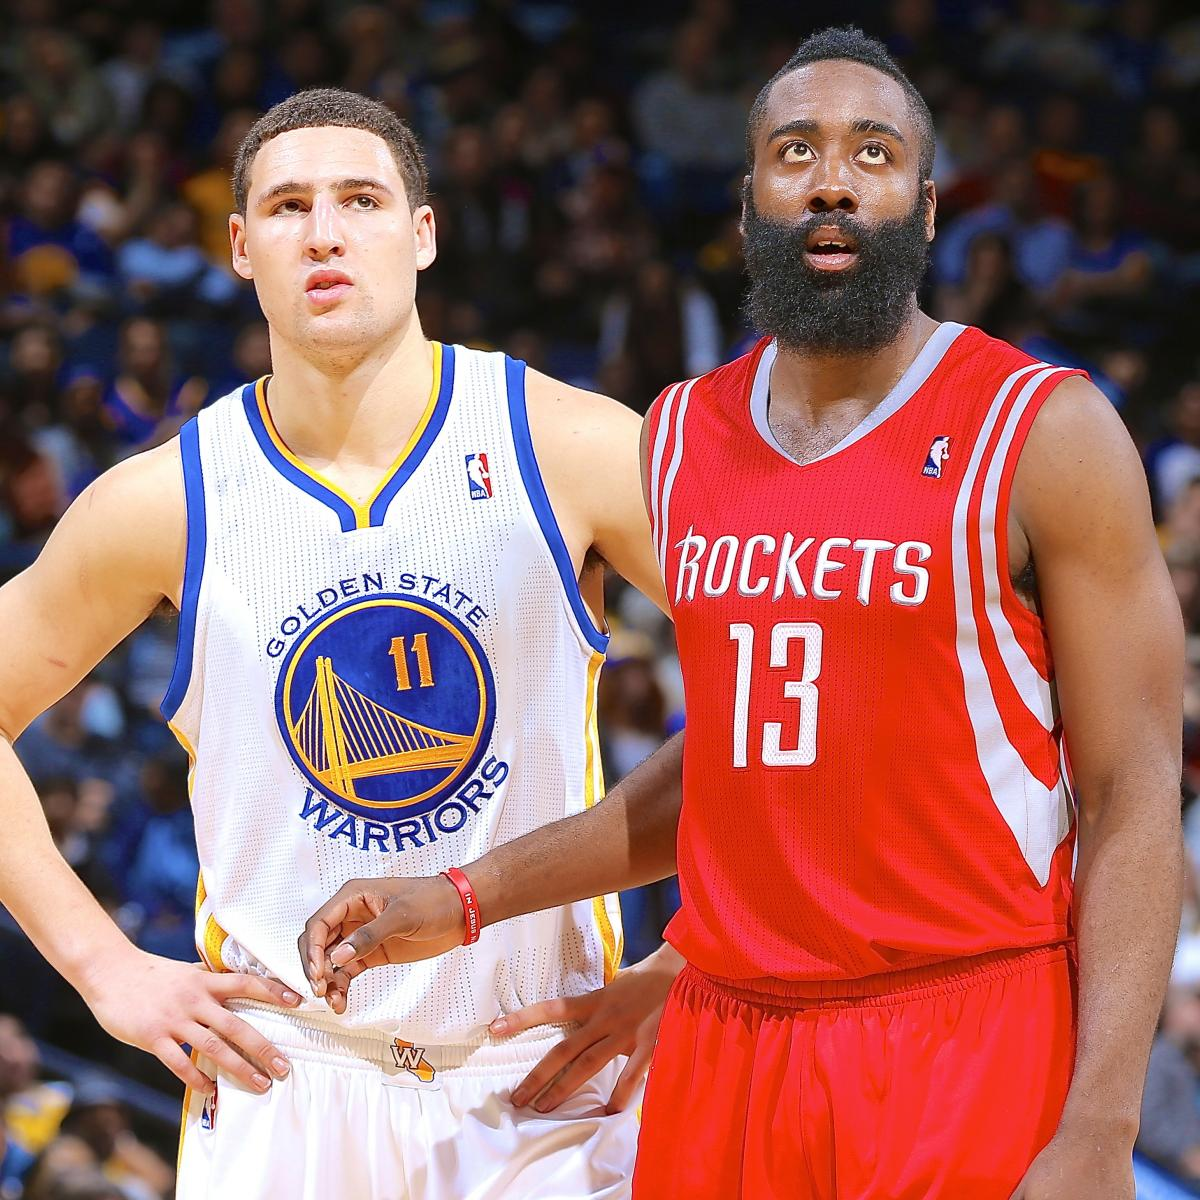 Houston Rockets Vs. Golden State Warriors: Live Score And